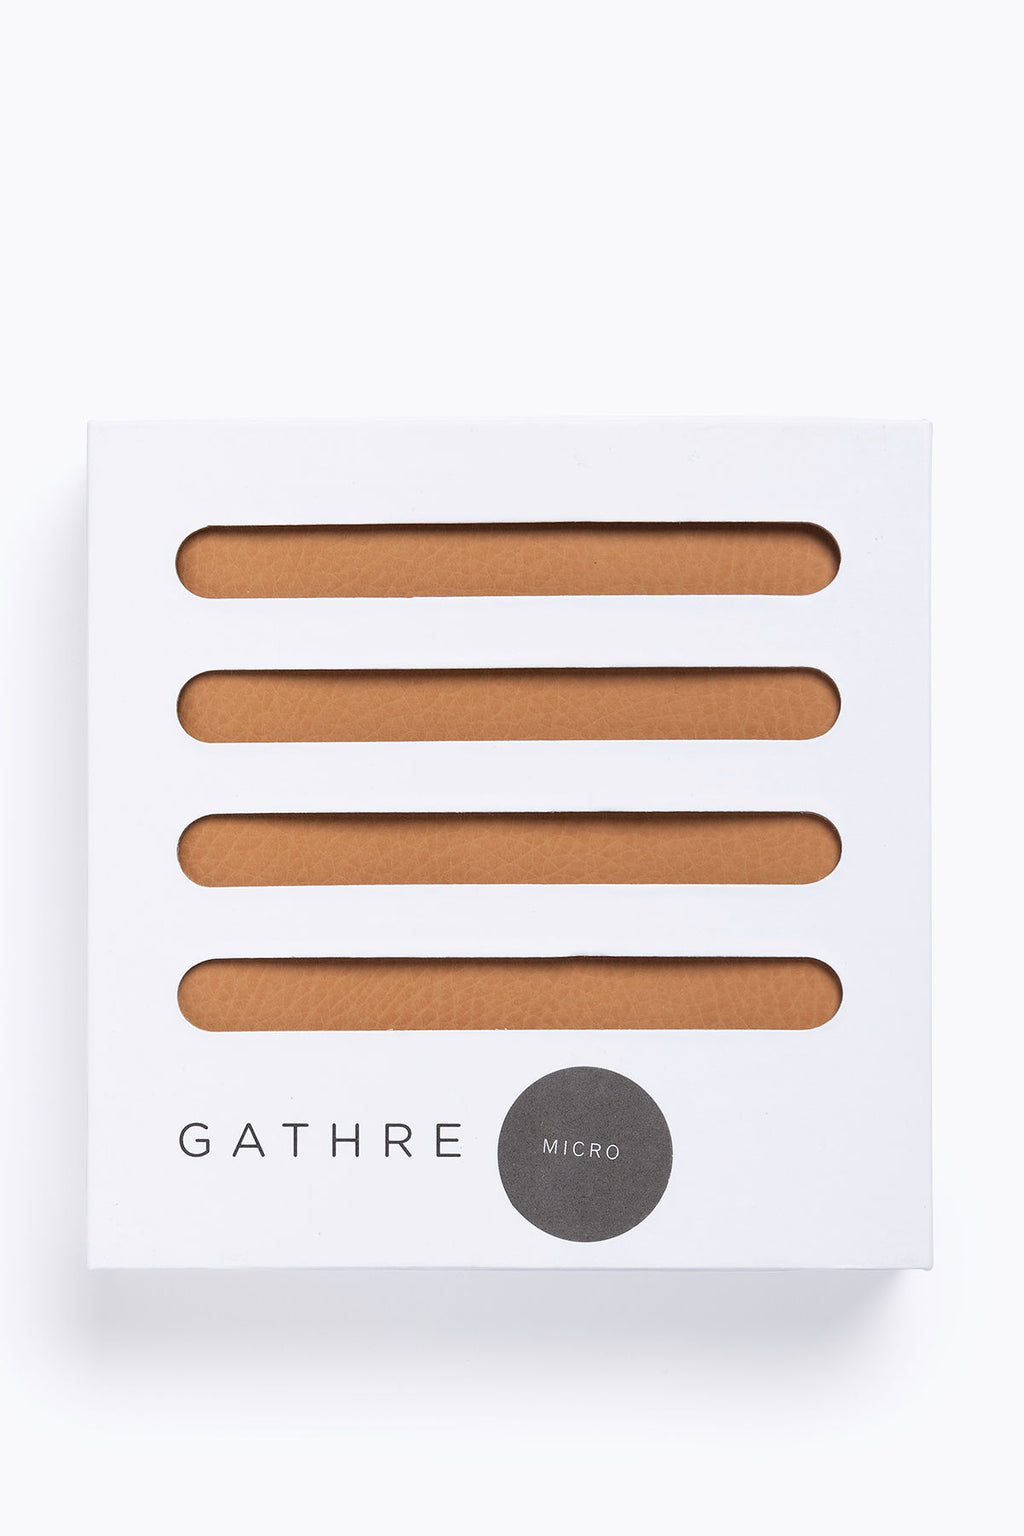 HOME: Gathre Micro Mat in Saddle